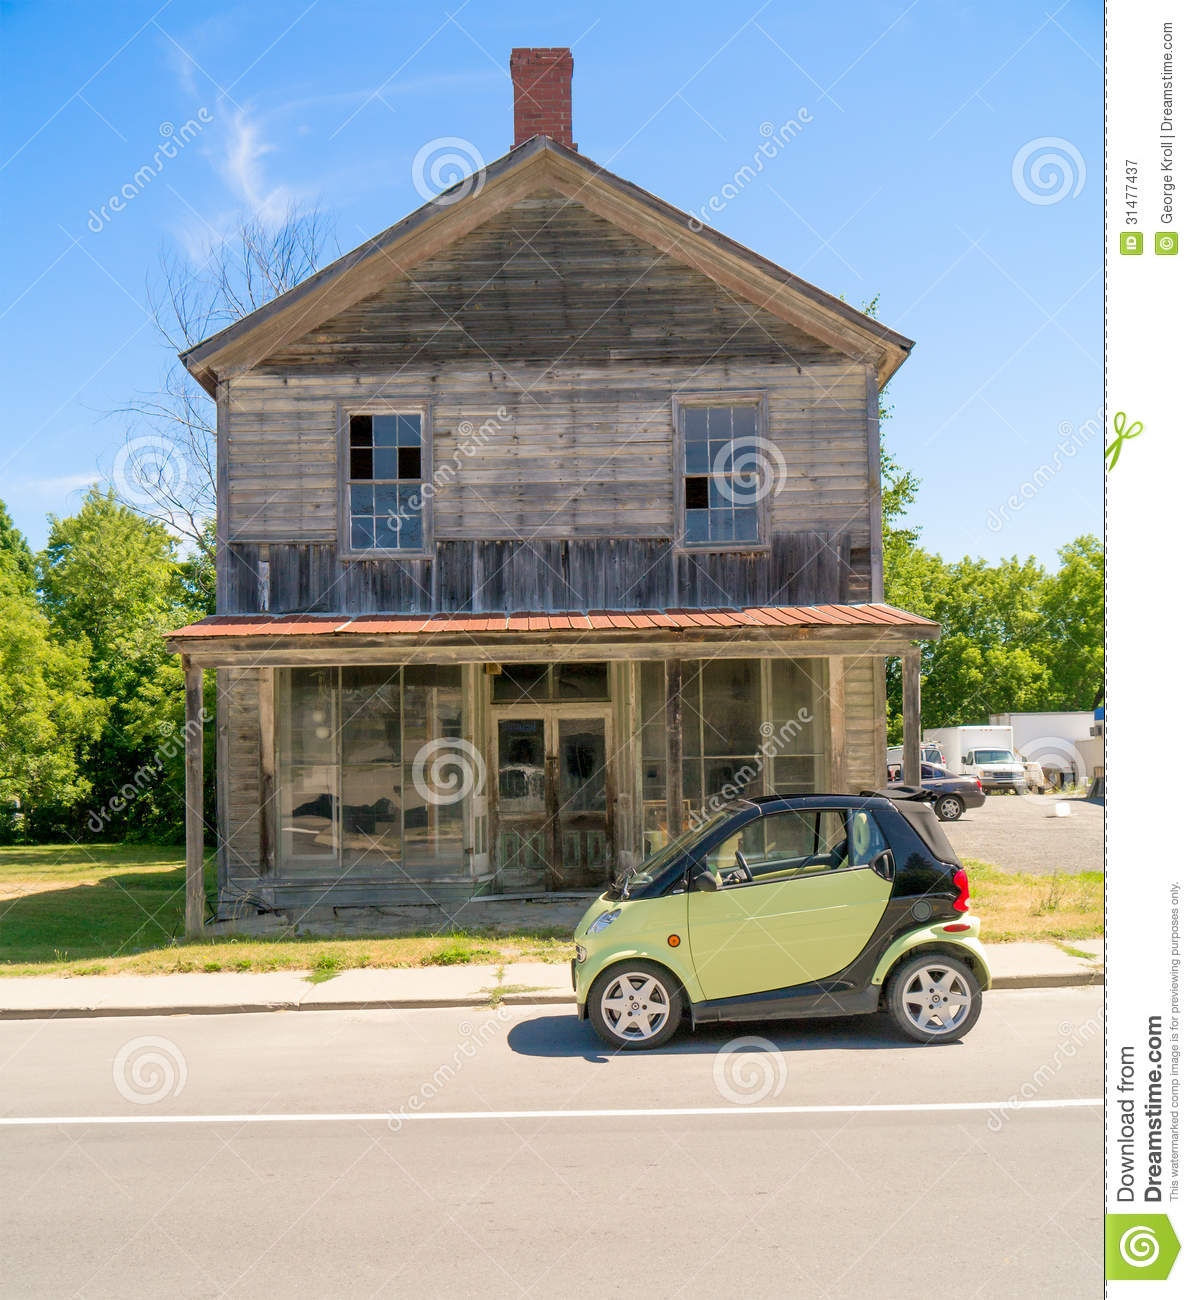 Smart Car In Front Of Old Wooden House Royalty Free Stock